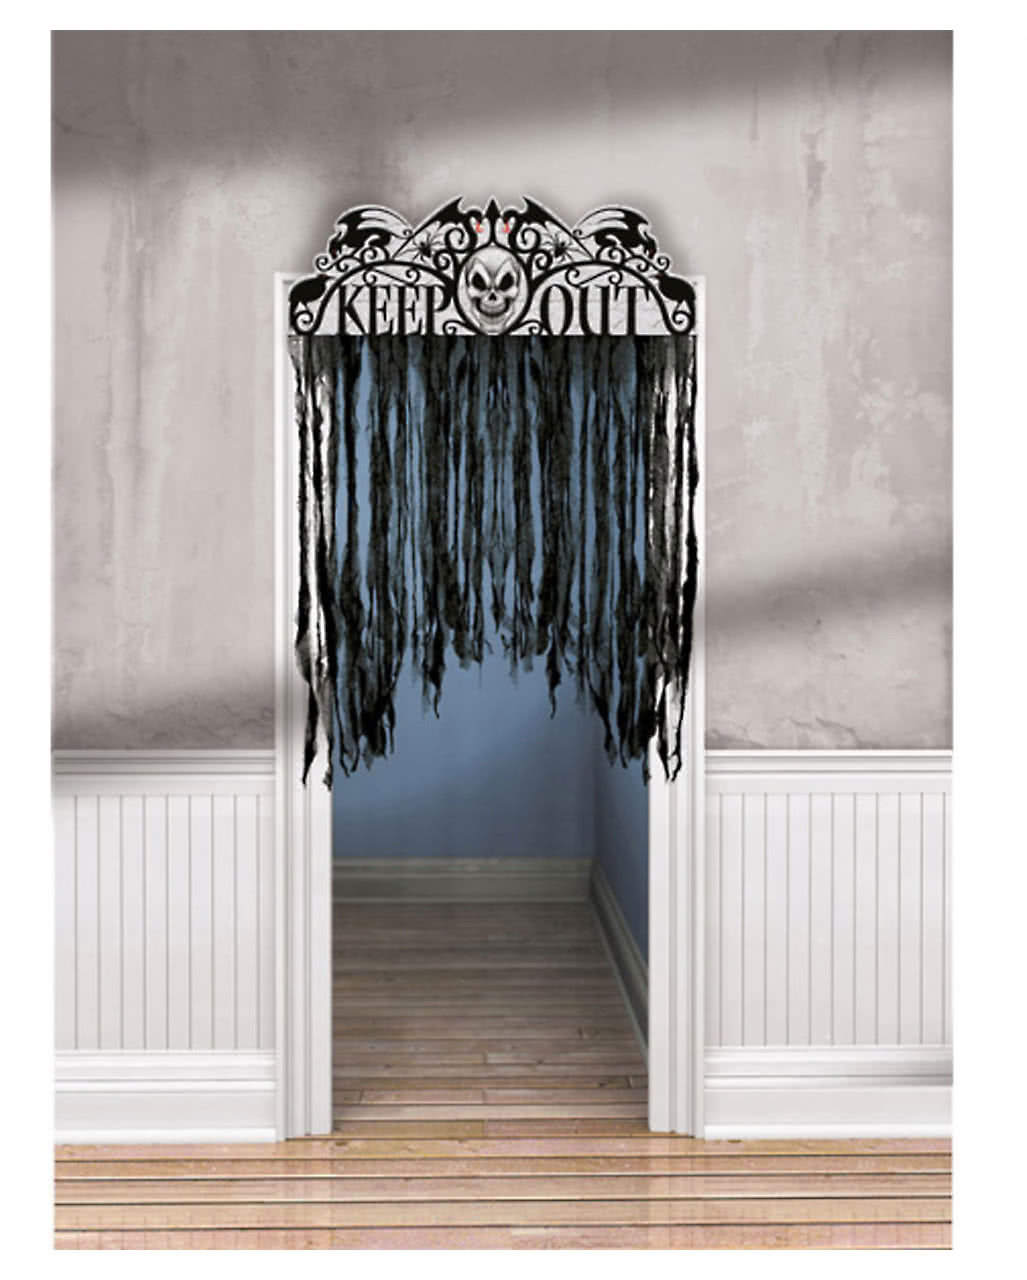 Spooky Door Curtain Spooky Door Curtain  sc 1 st  Horror-Shop.com & Spooky Door Curtain |Haunted Door Curtain|Keep Out Warning ... pezcame.com